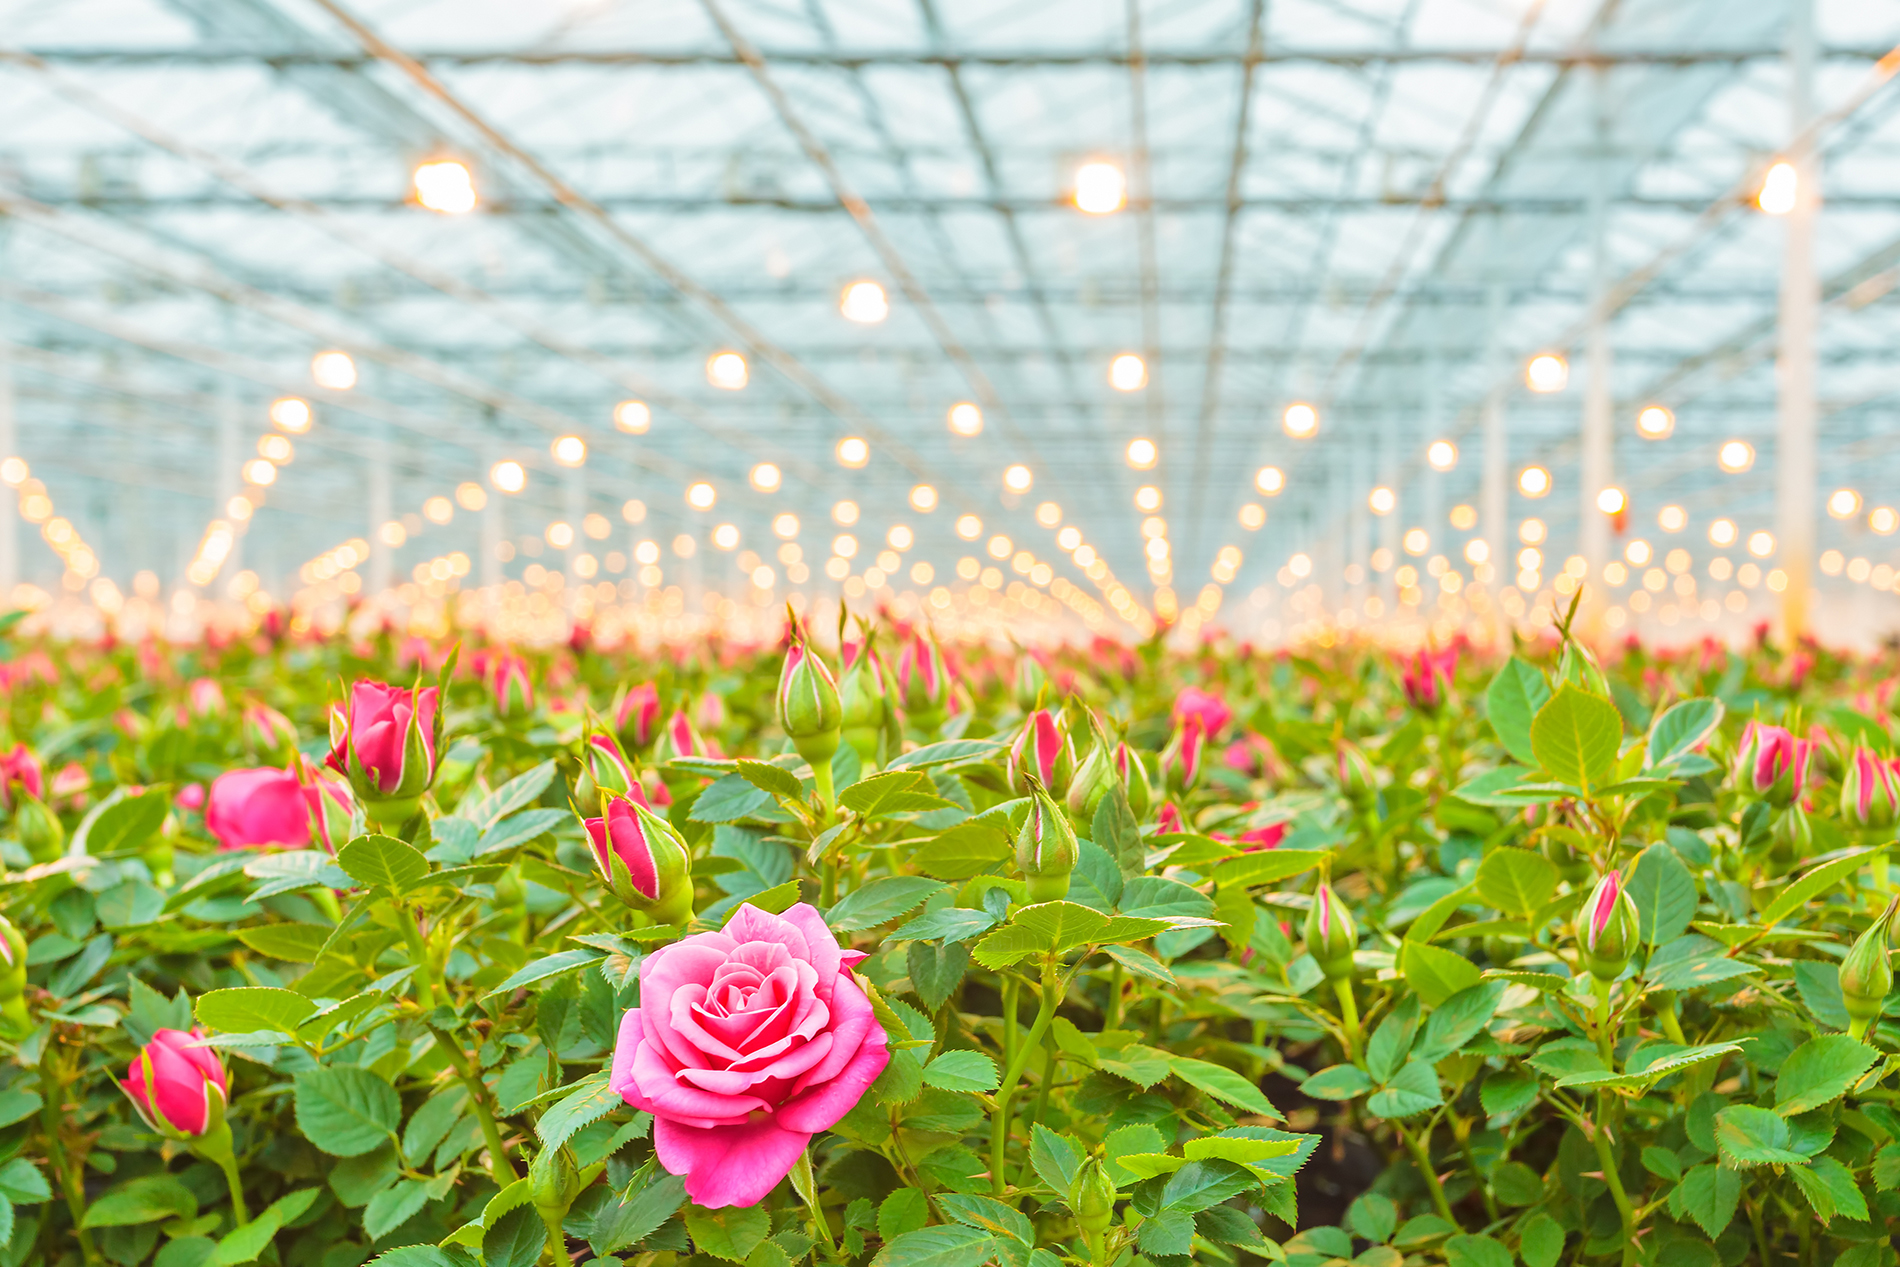 The Roses grown in greenhouse 53115